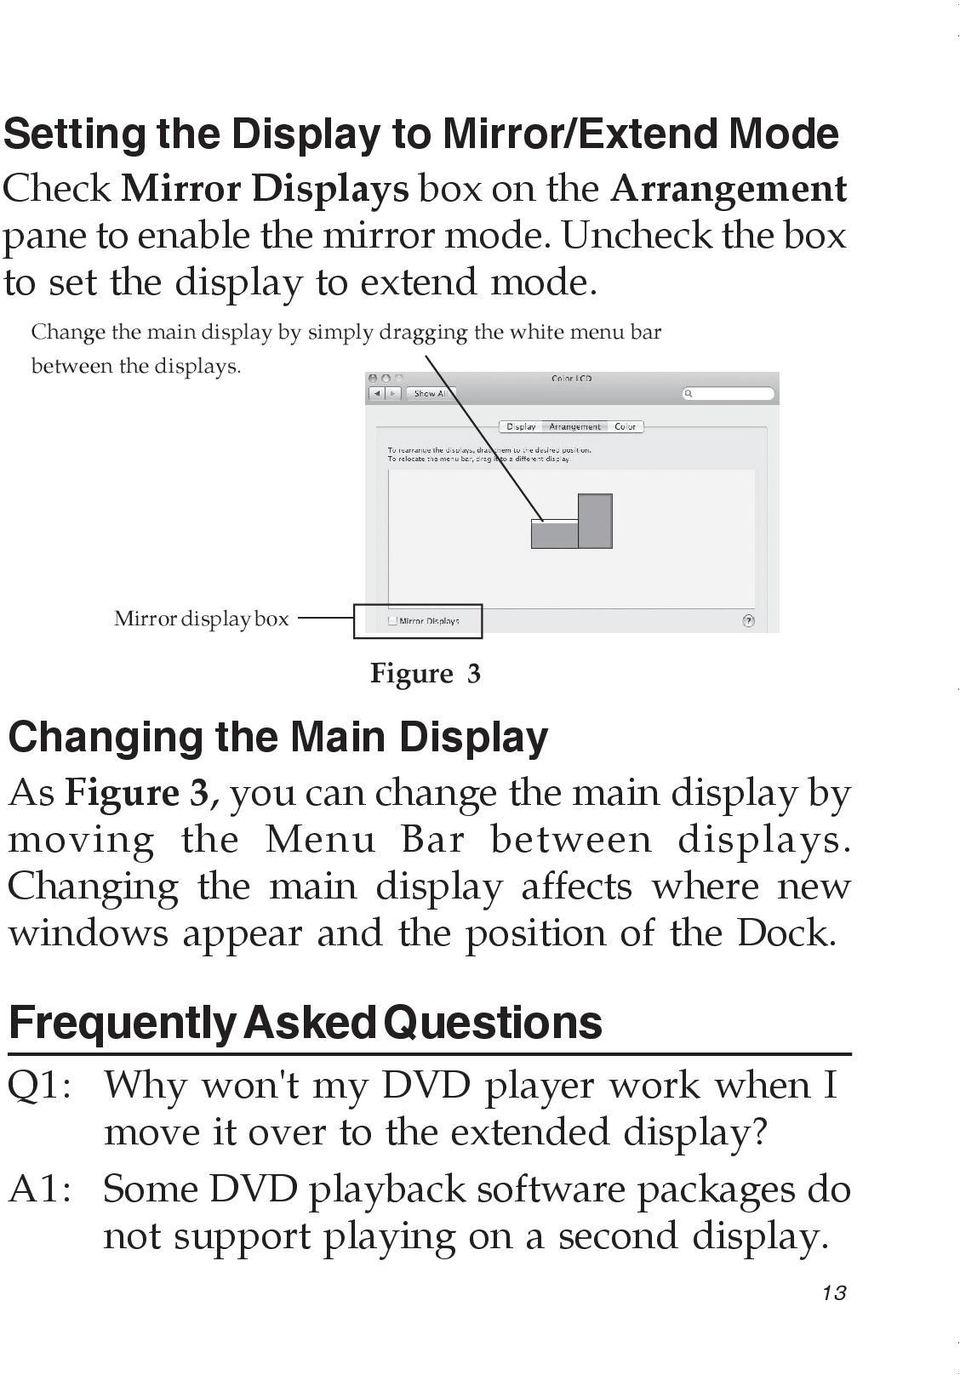 Mirror display box Figure 3 Changing the Main Display As Figure 3, you can change the main display by moving the Menu Bar between displays.